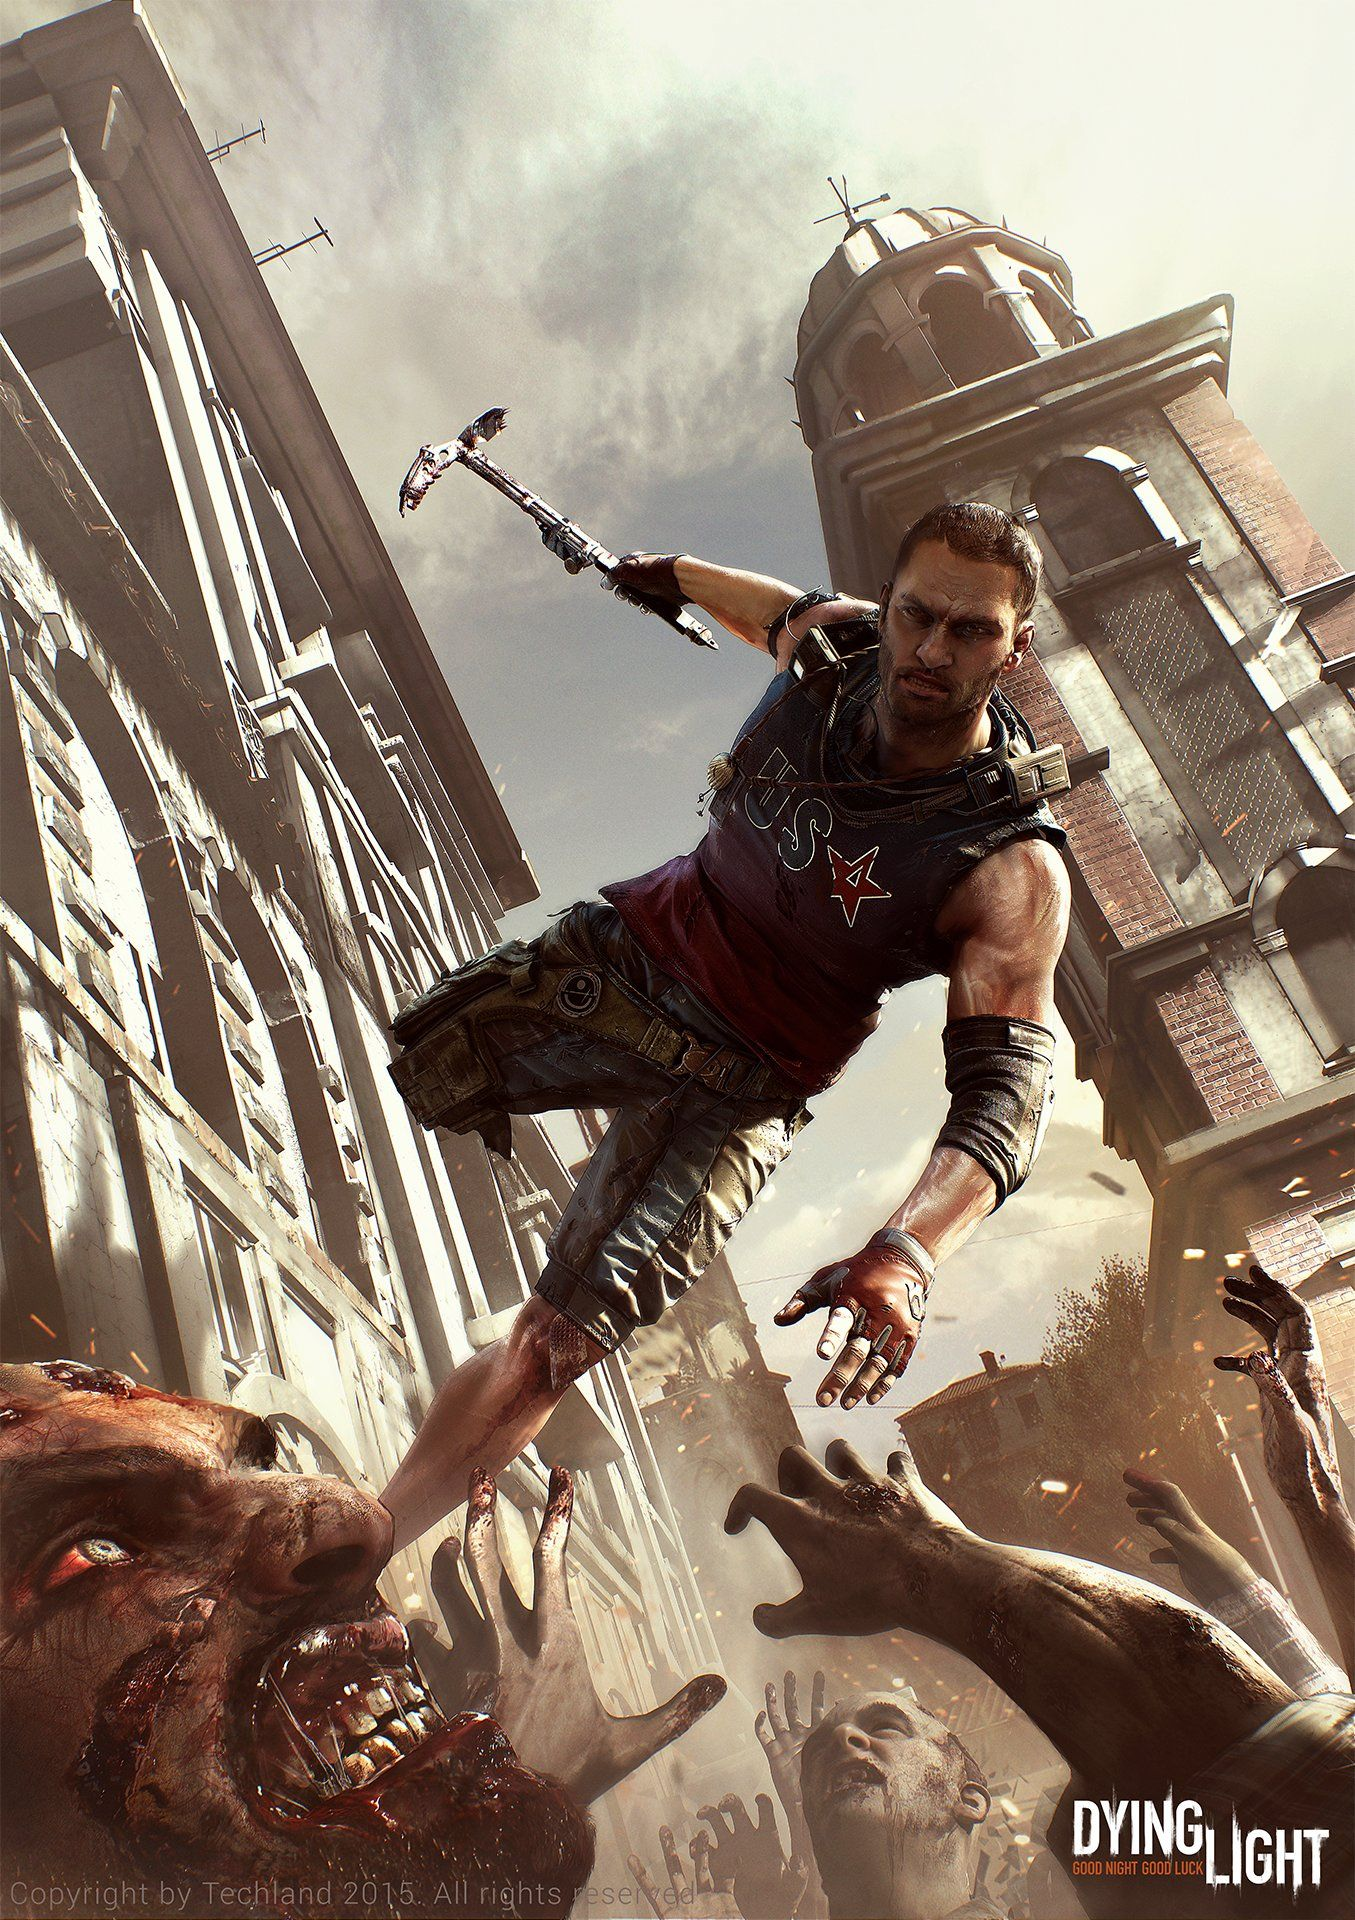 When You Start Dying Light I WILL SAVE EVERY SURVIVOR GAIN WEAPON KILL A MIGHT HUNTER Finish Naaaa Still Gotta Like Capture